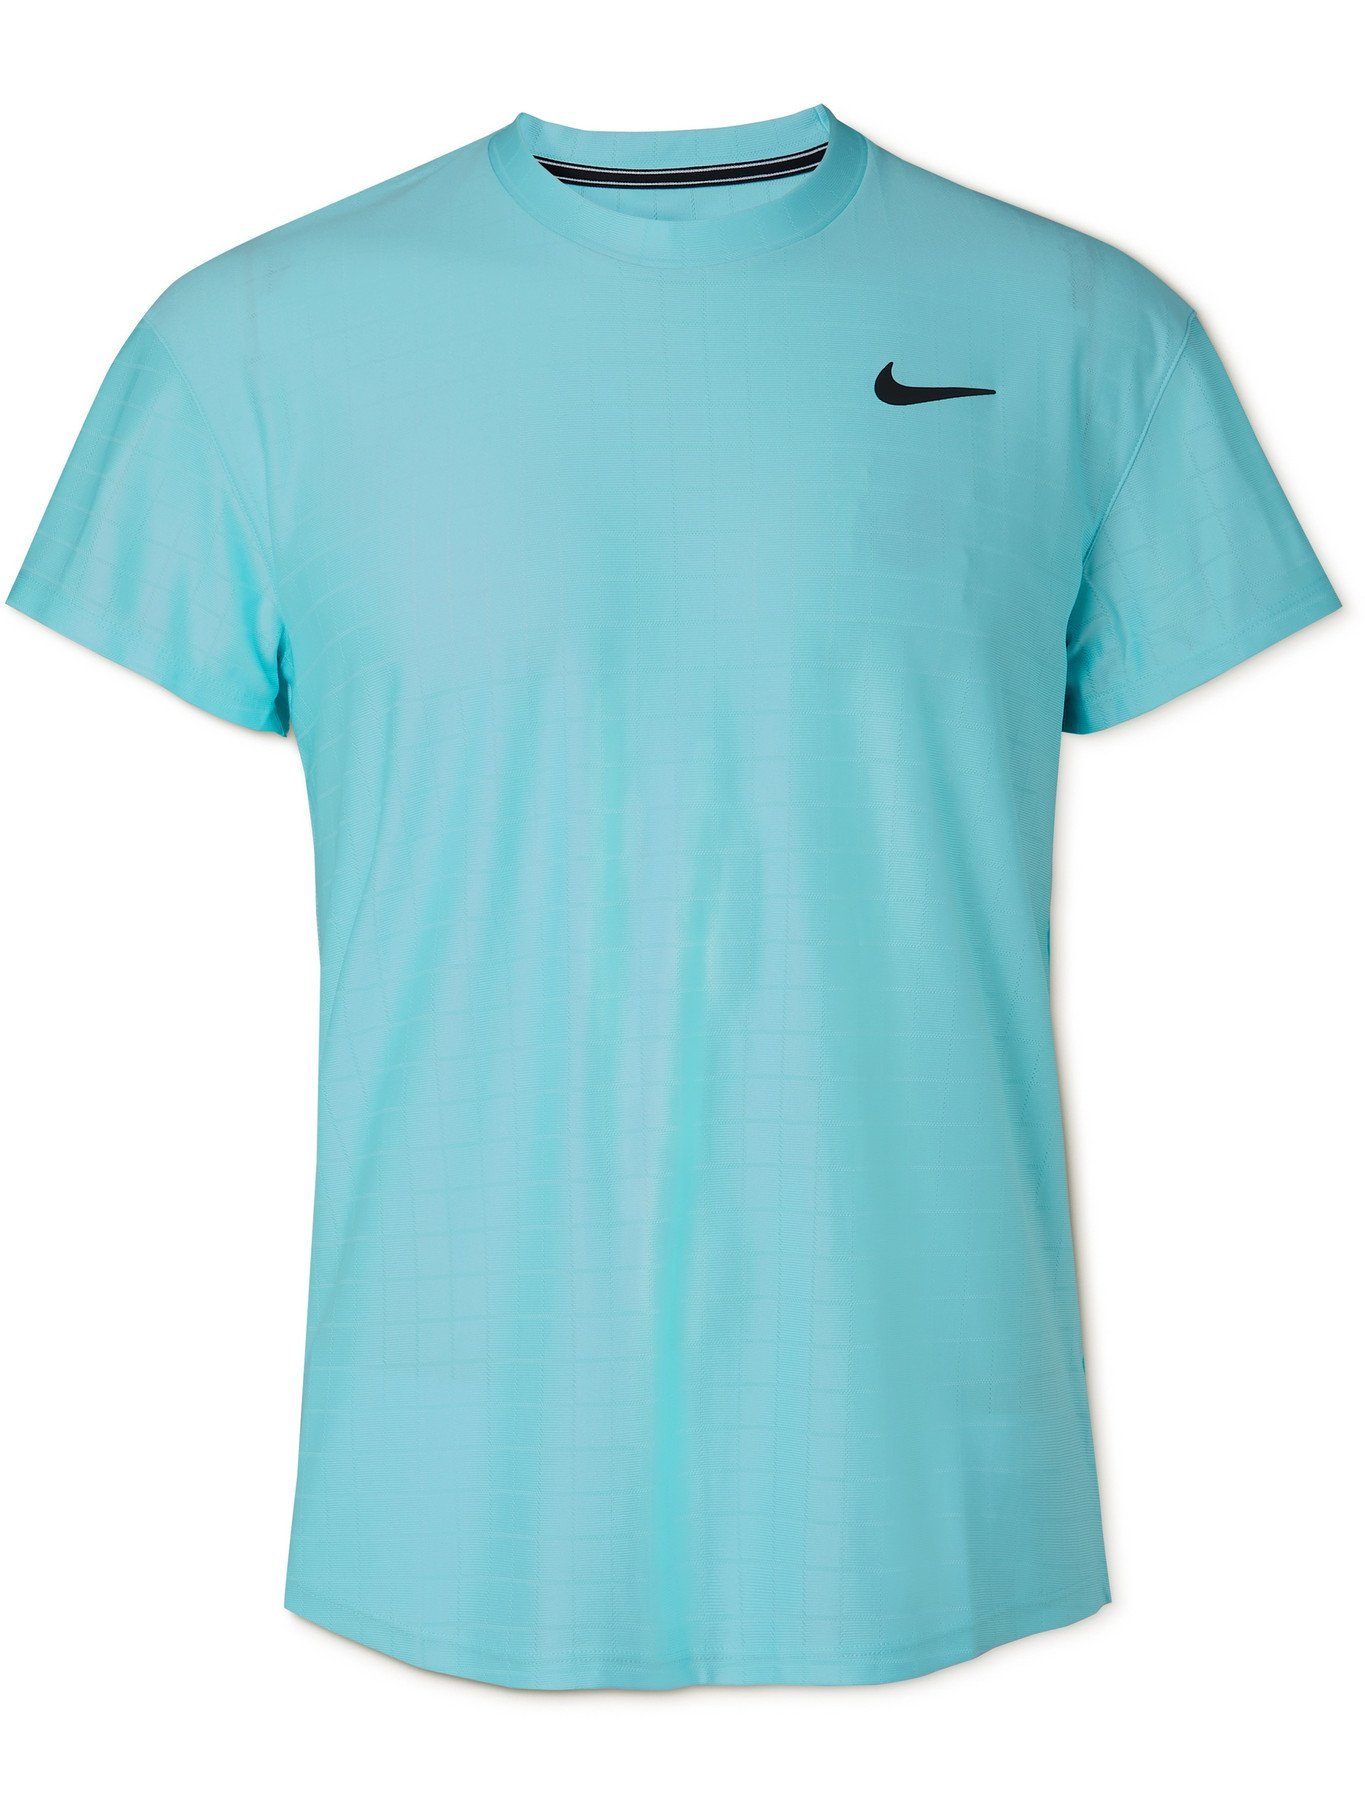 Photo: NIKE TENNIS - NikeCourt Advantage Dri-FIT Tennis T-Shirt - Blue